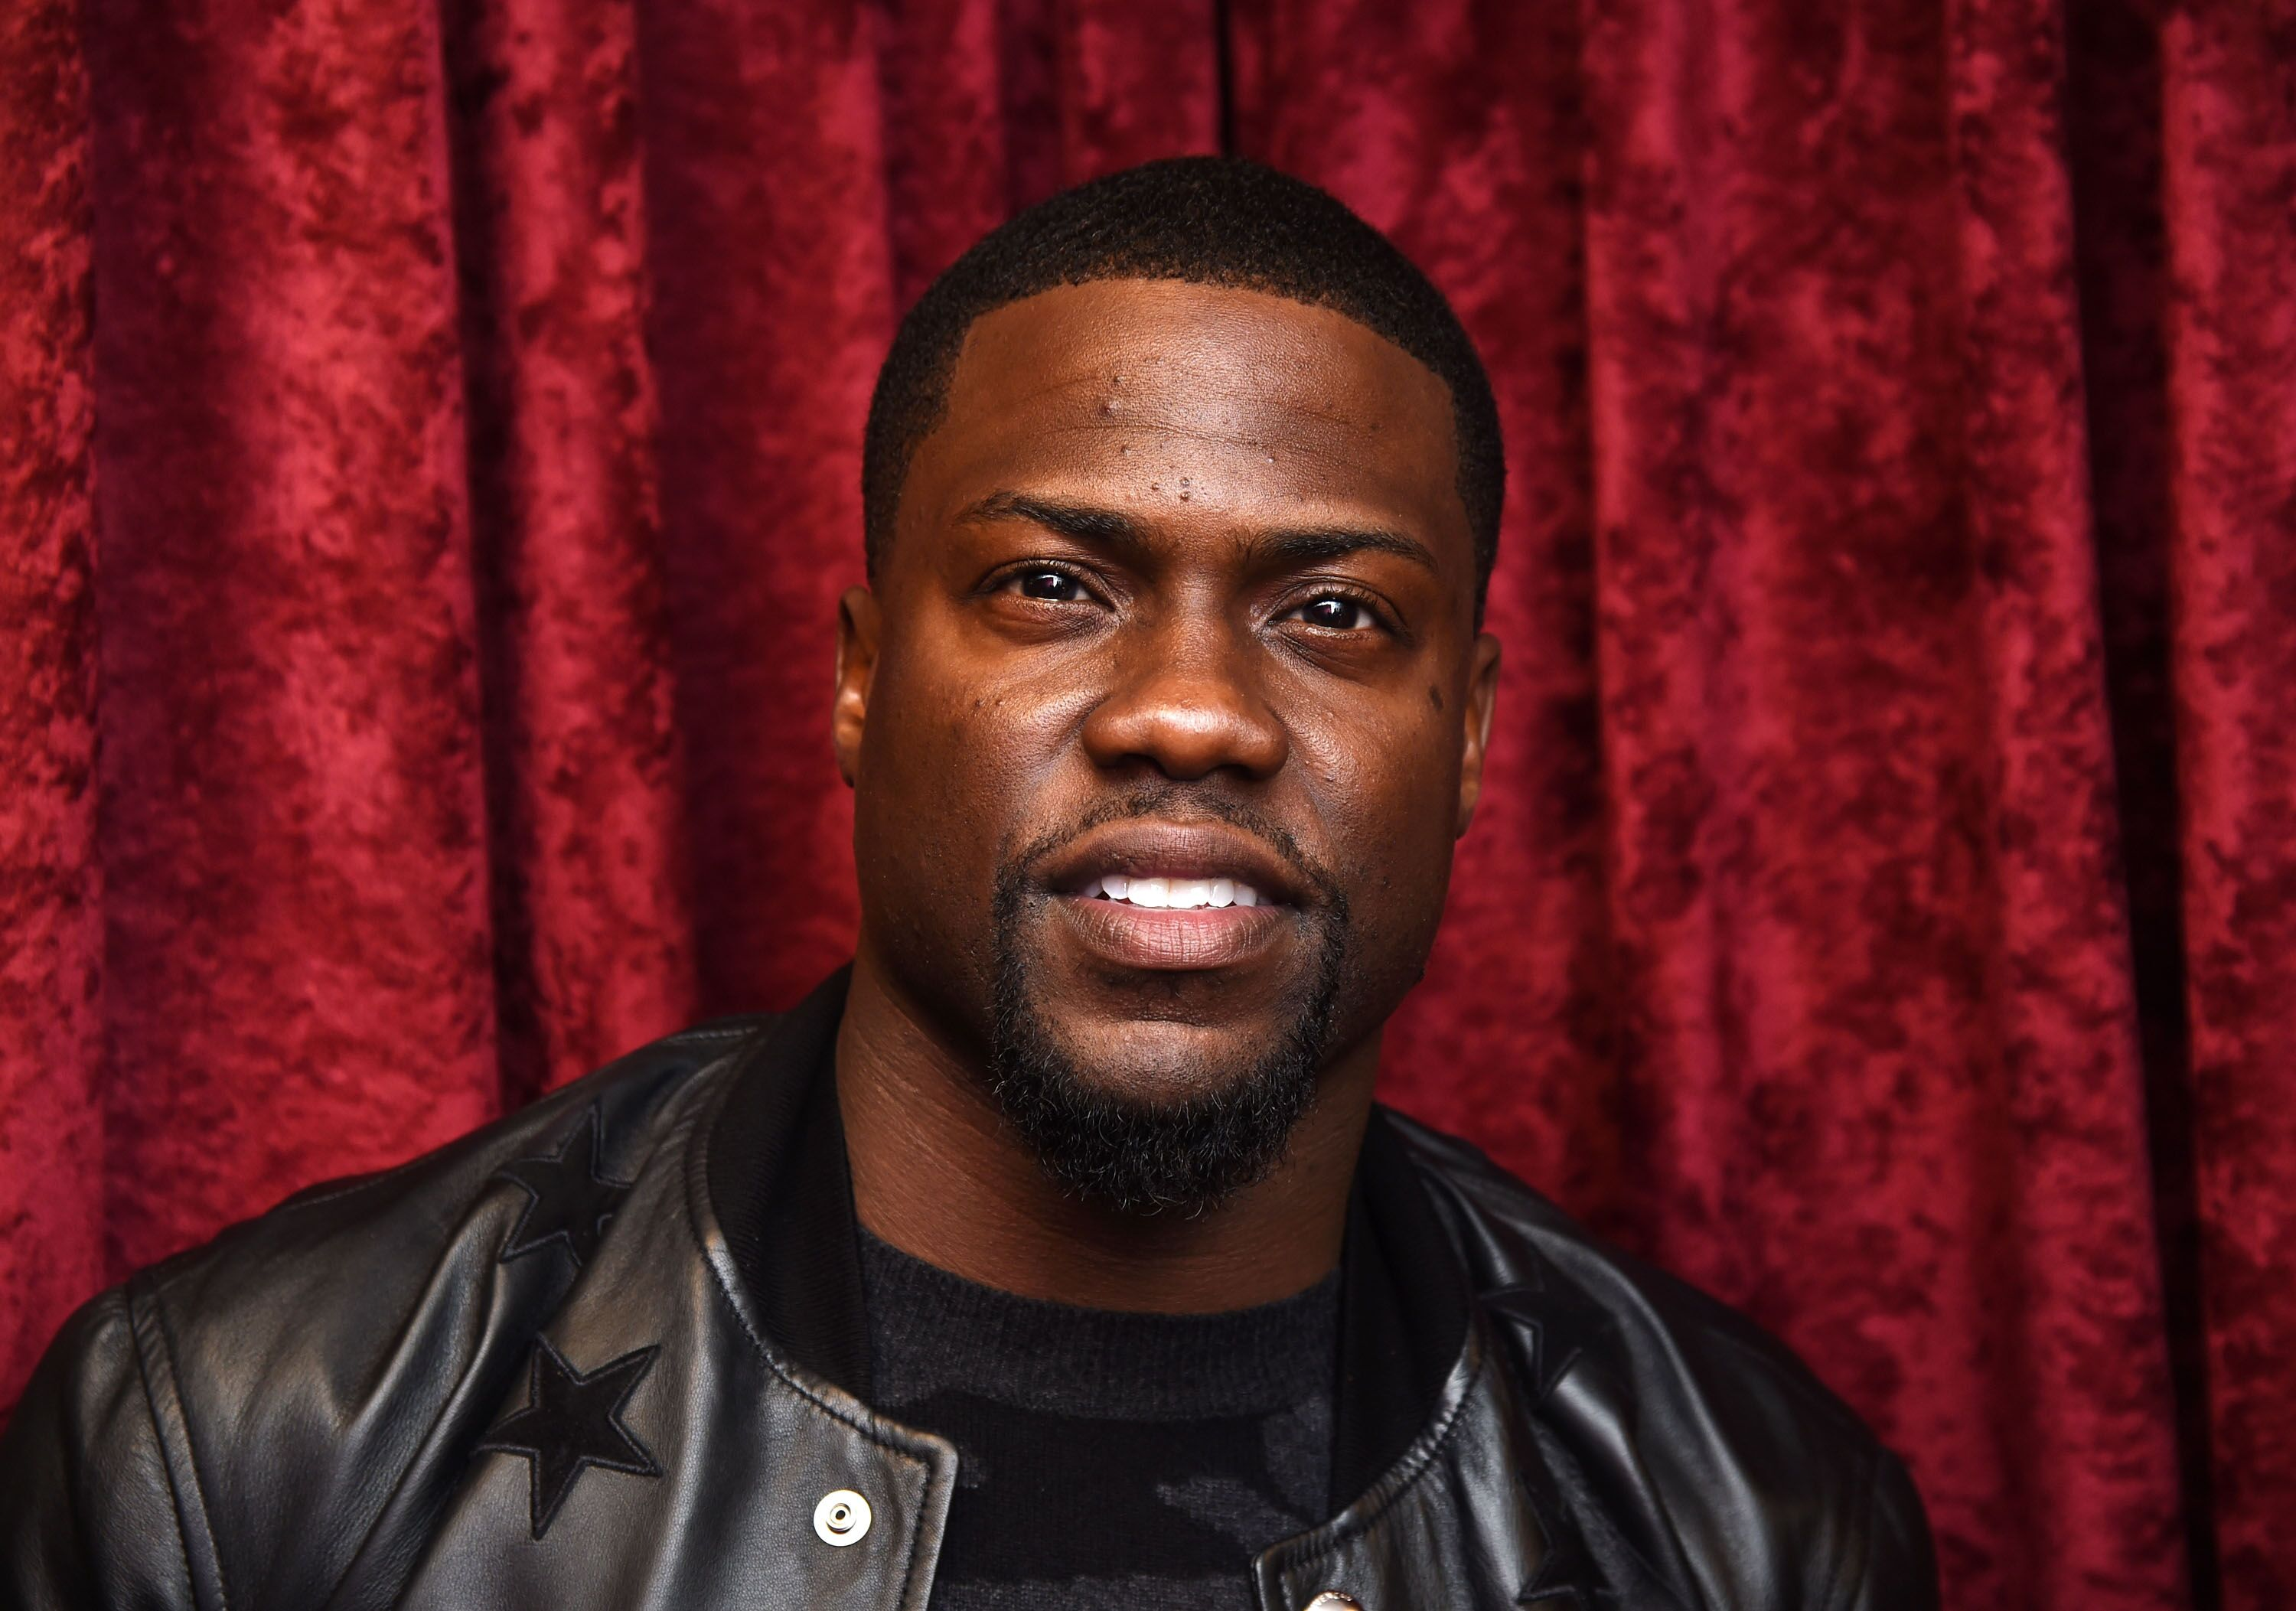 Comedian and actor Kevin Hart/ Source: Getty Images